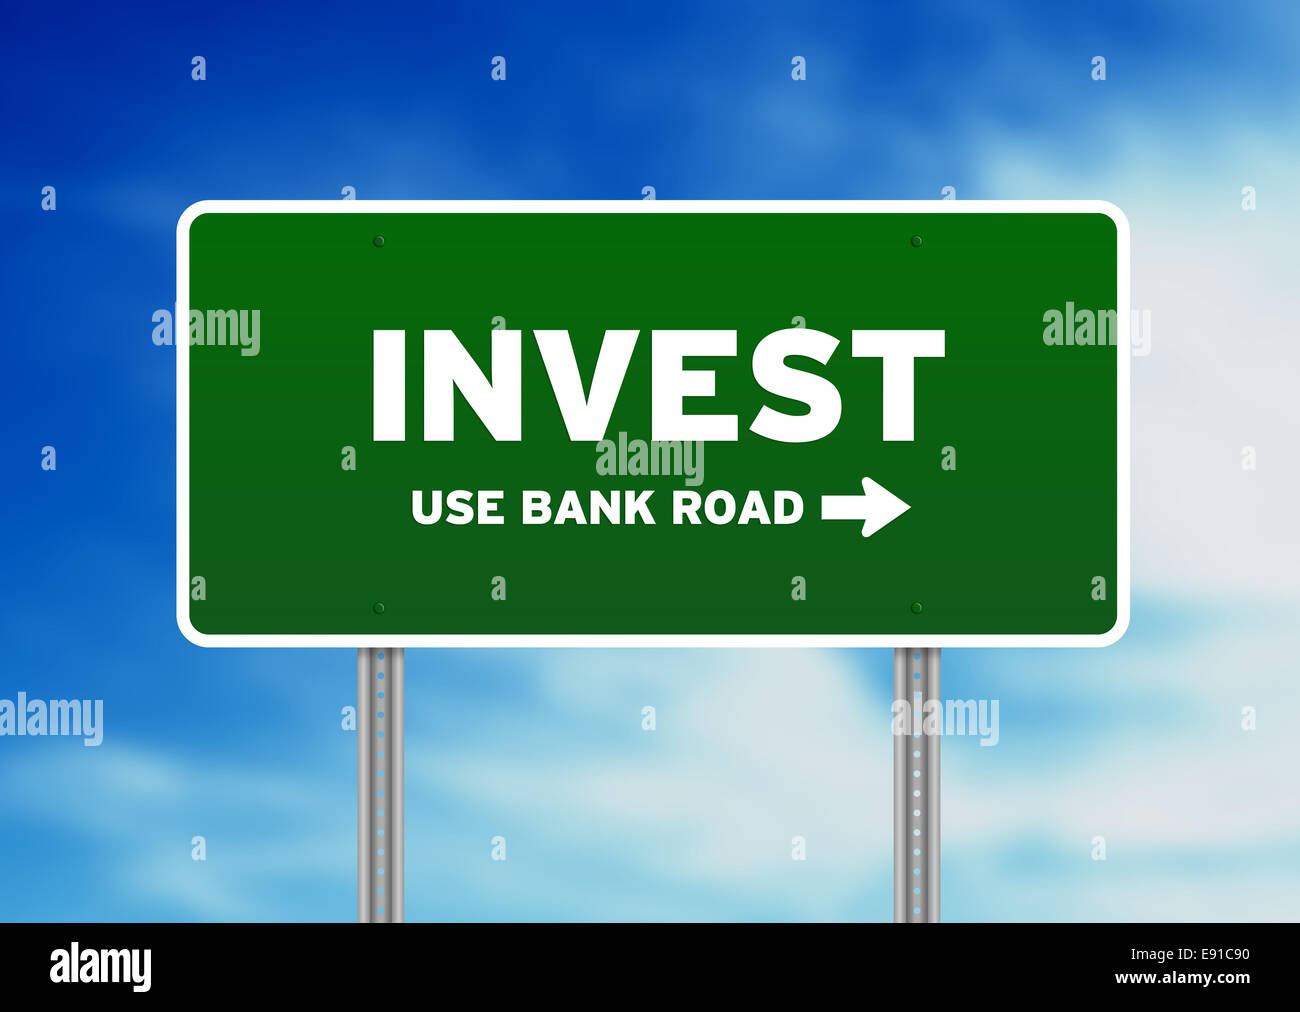 Invest Street Sign - Stock Image